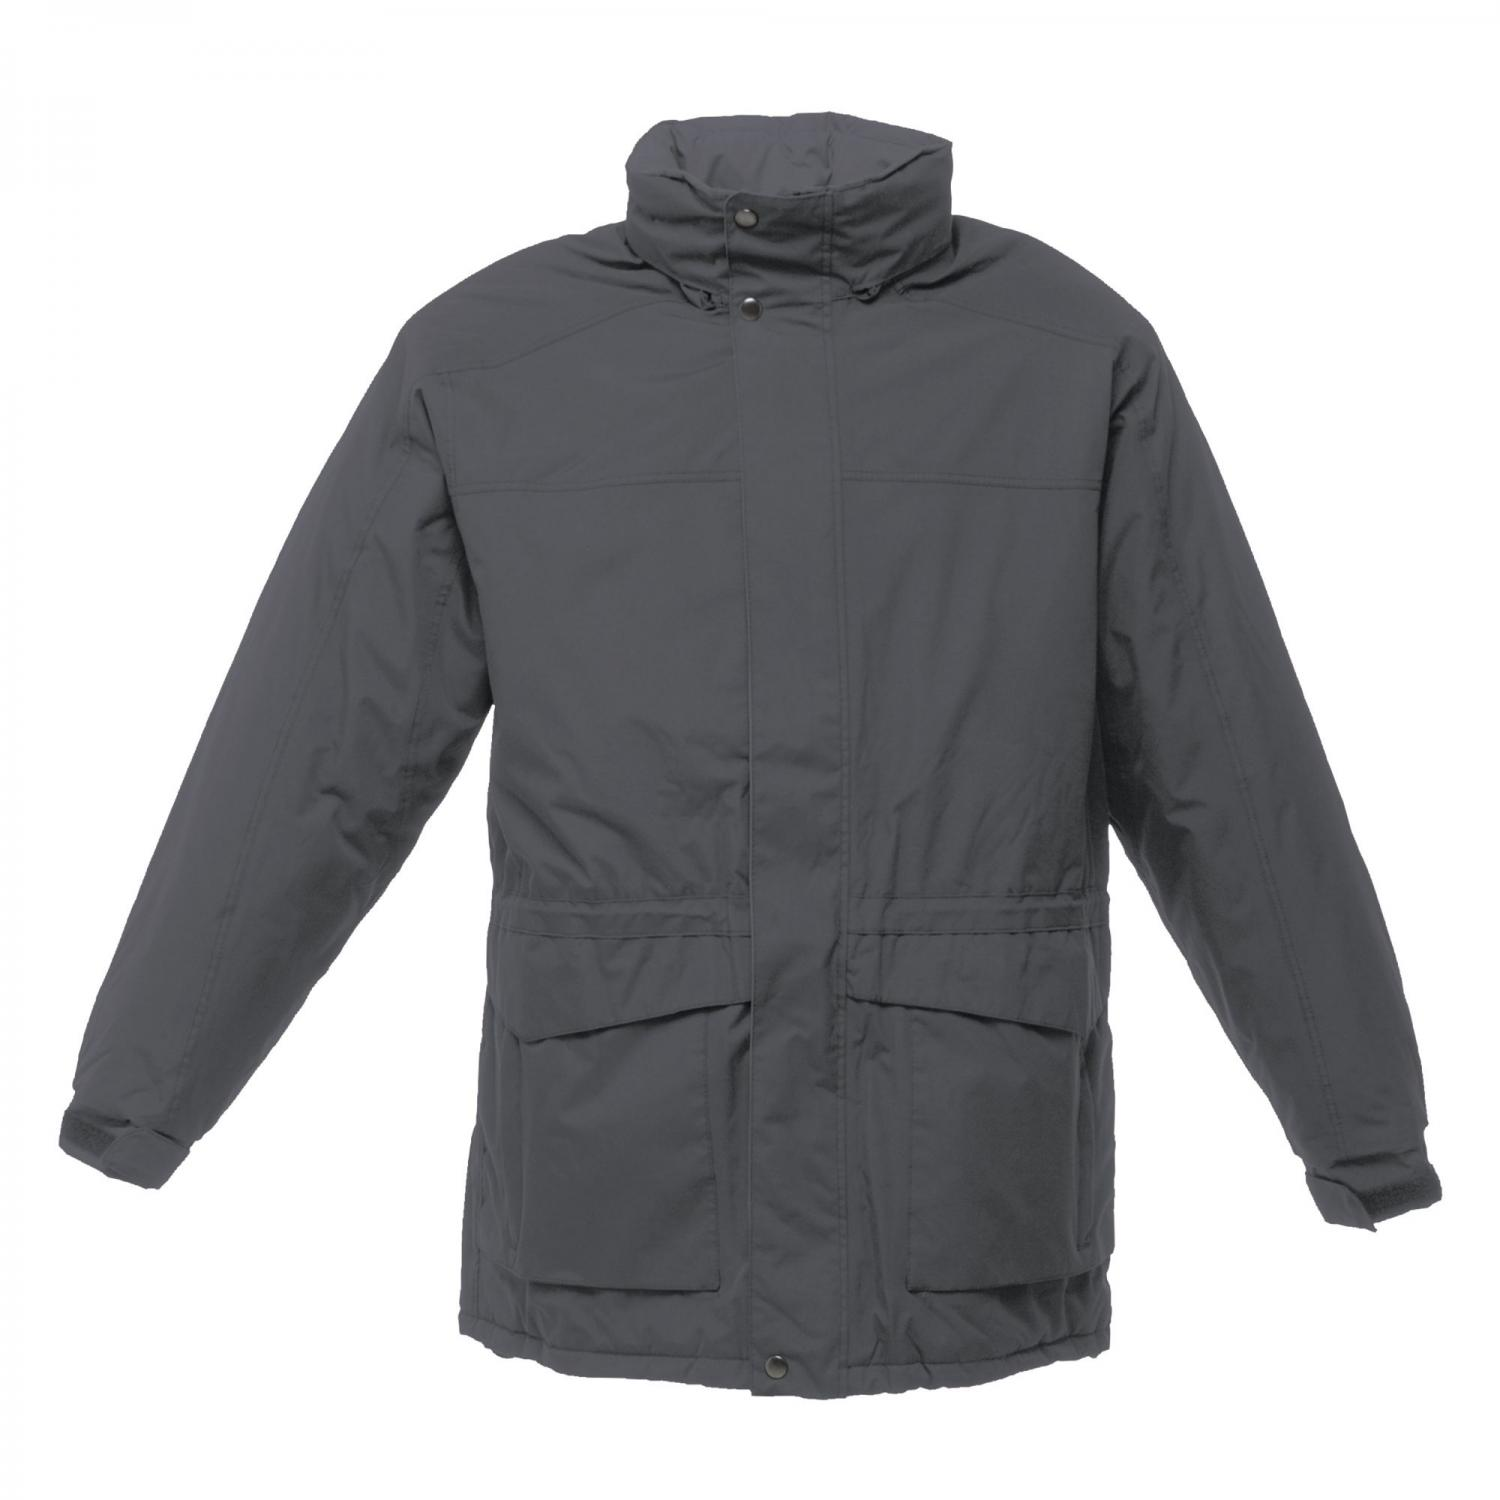 Darby II Insulated Jacket Seal Grey